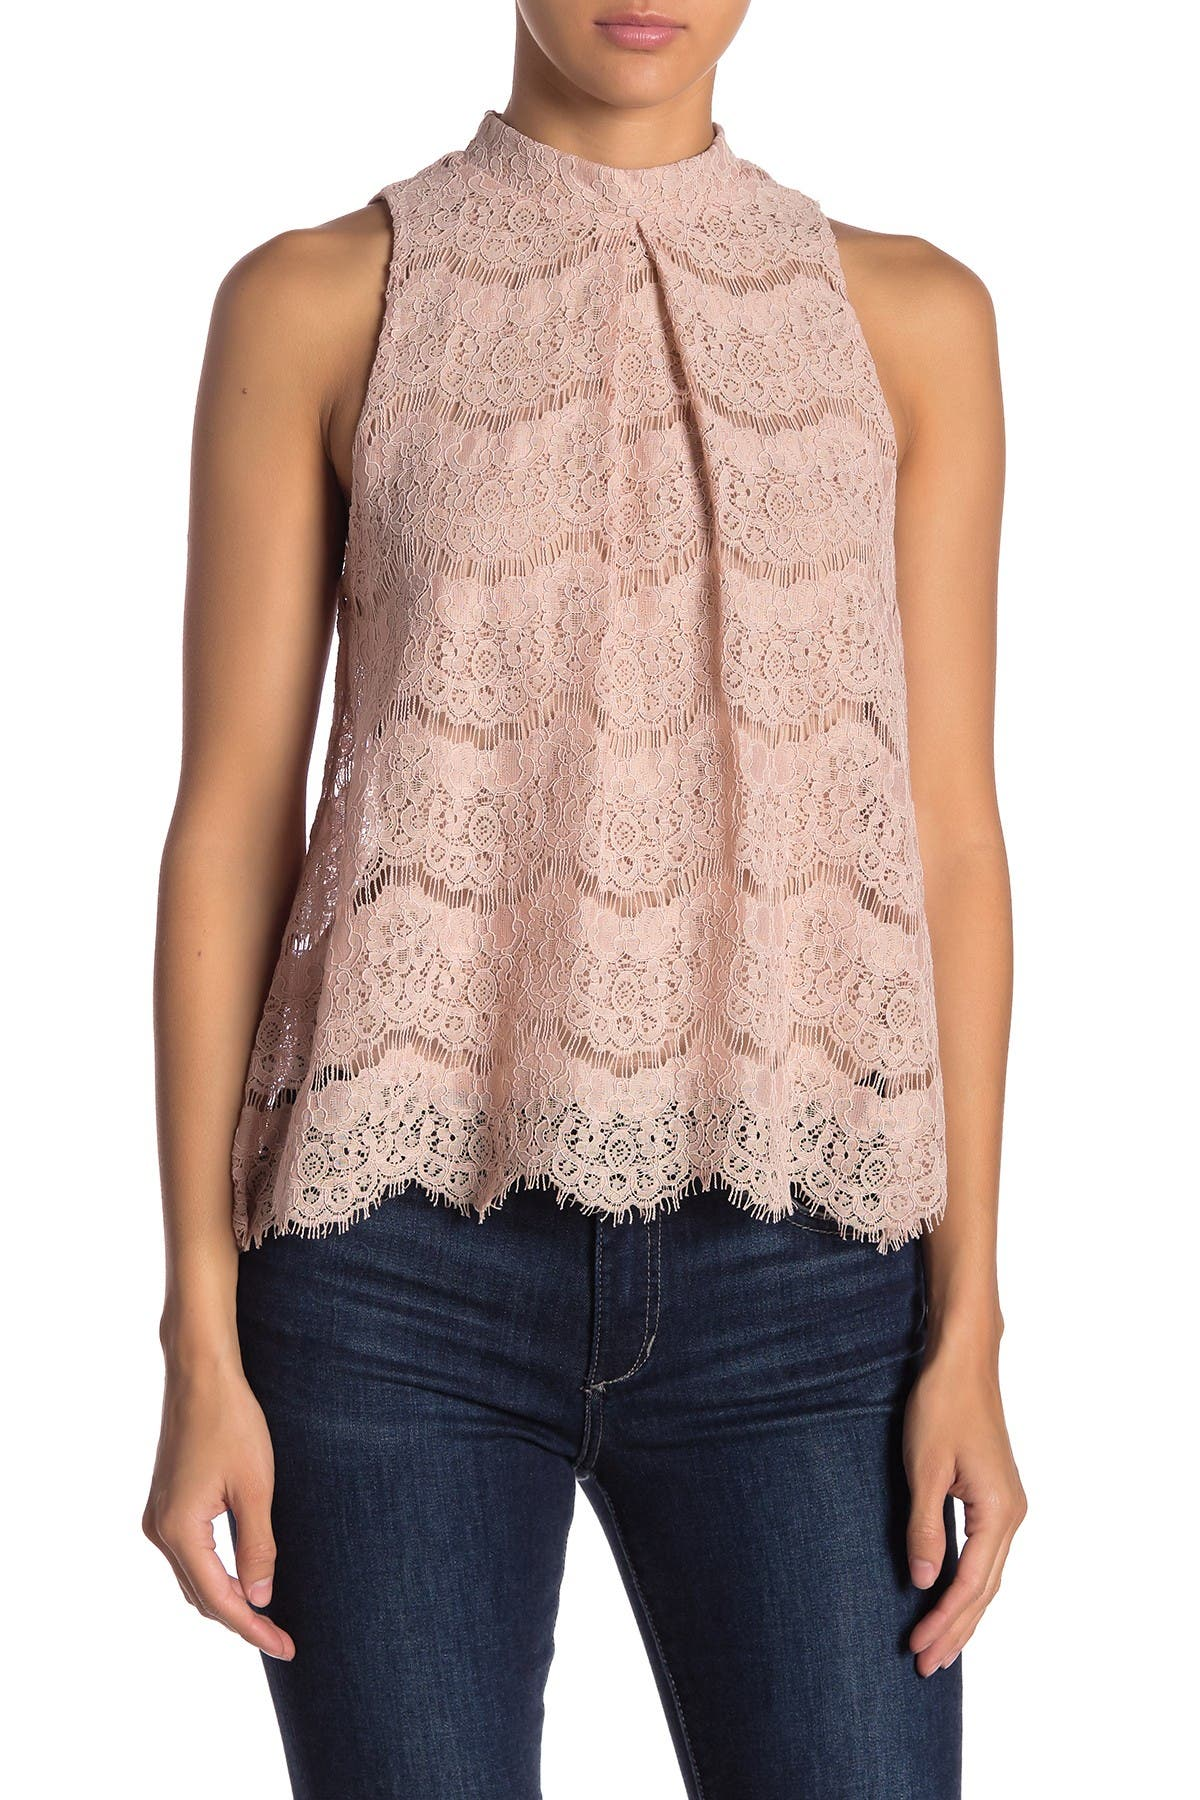 Image of Love, Fire Mock Neck Lace Tank Top